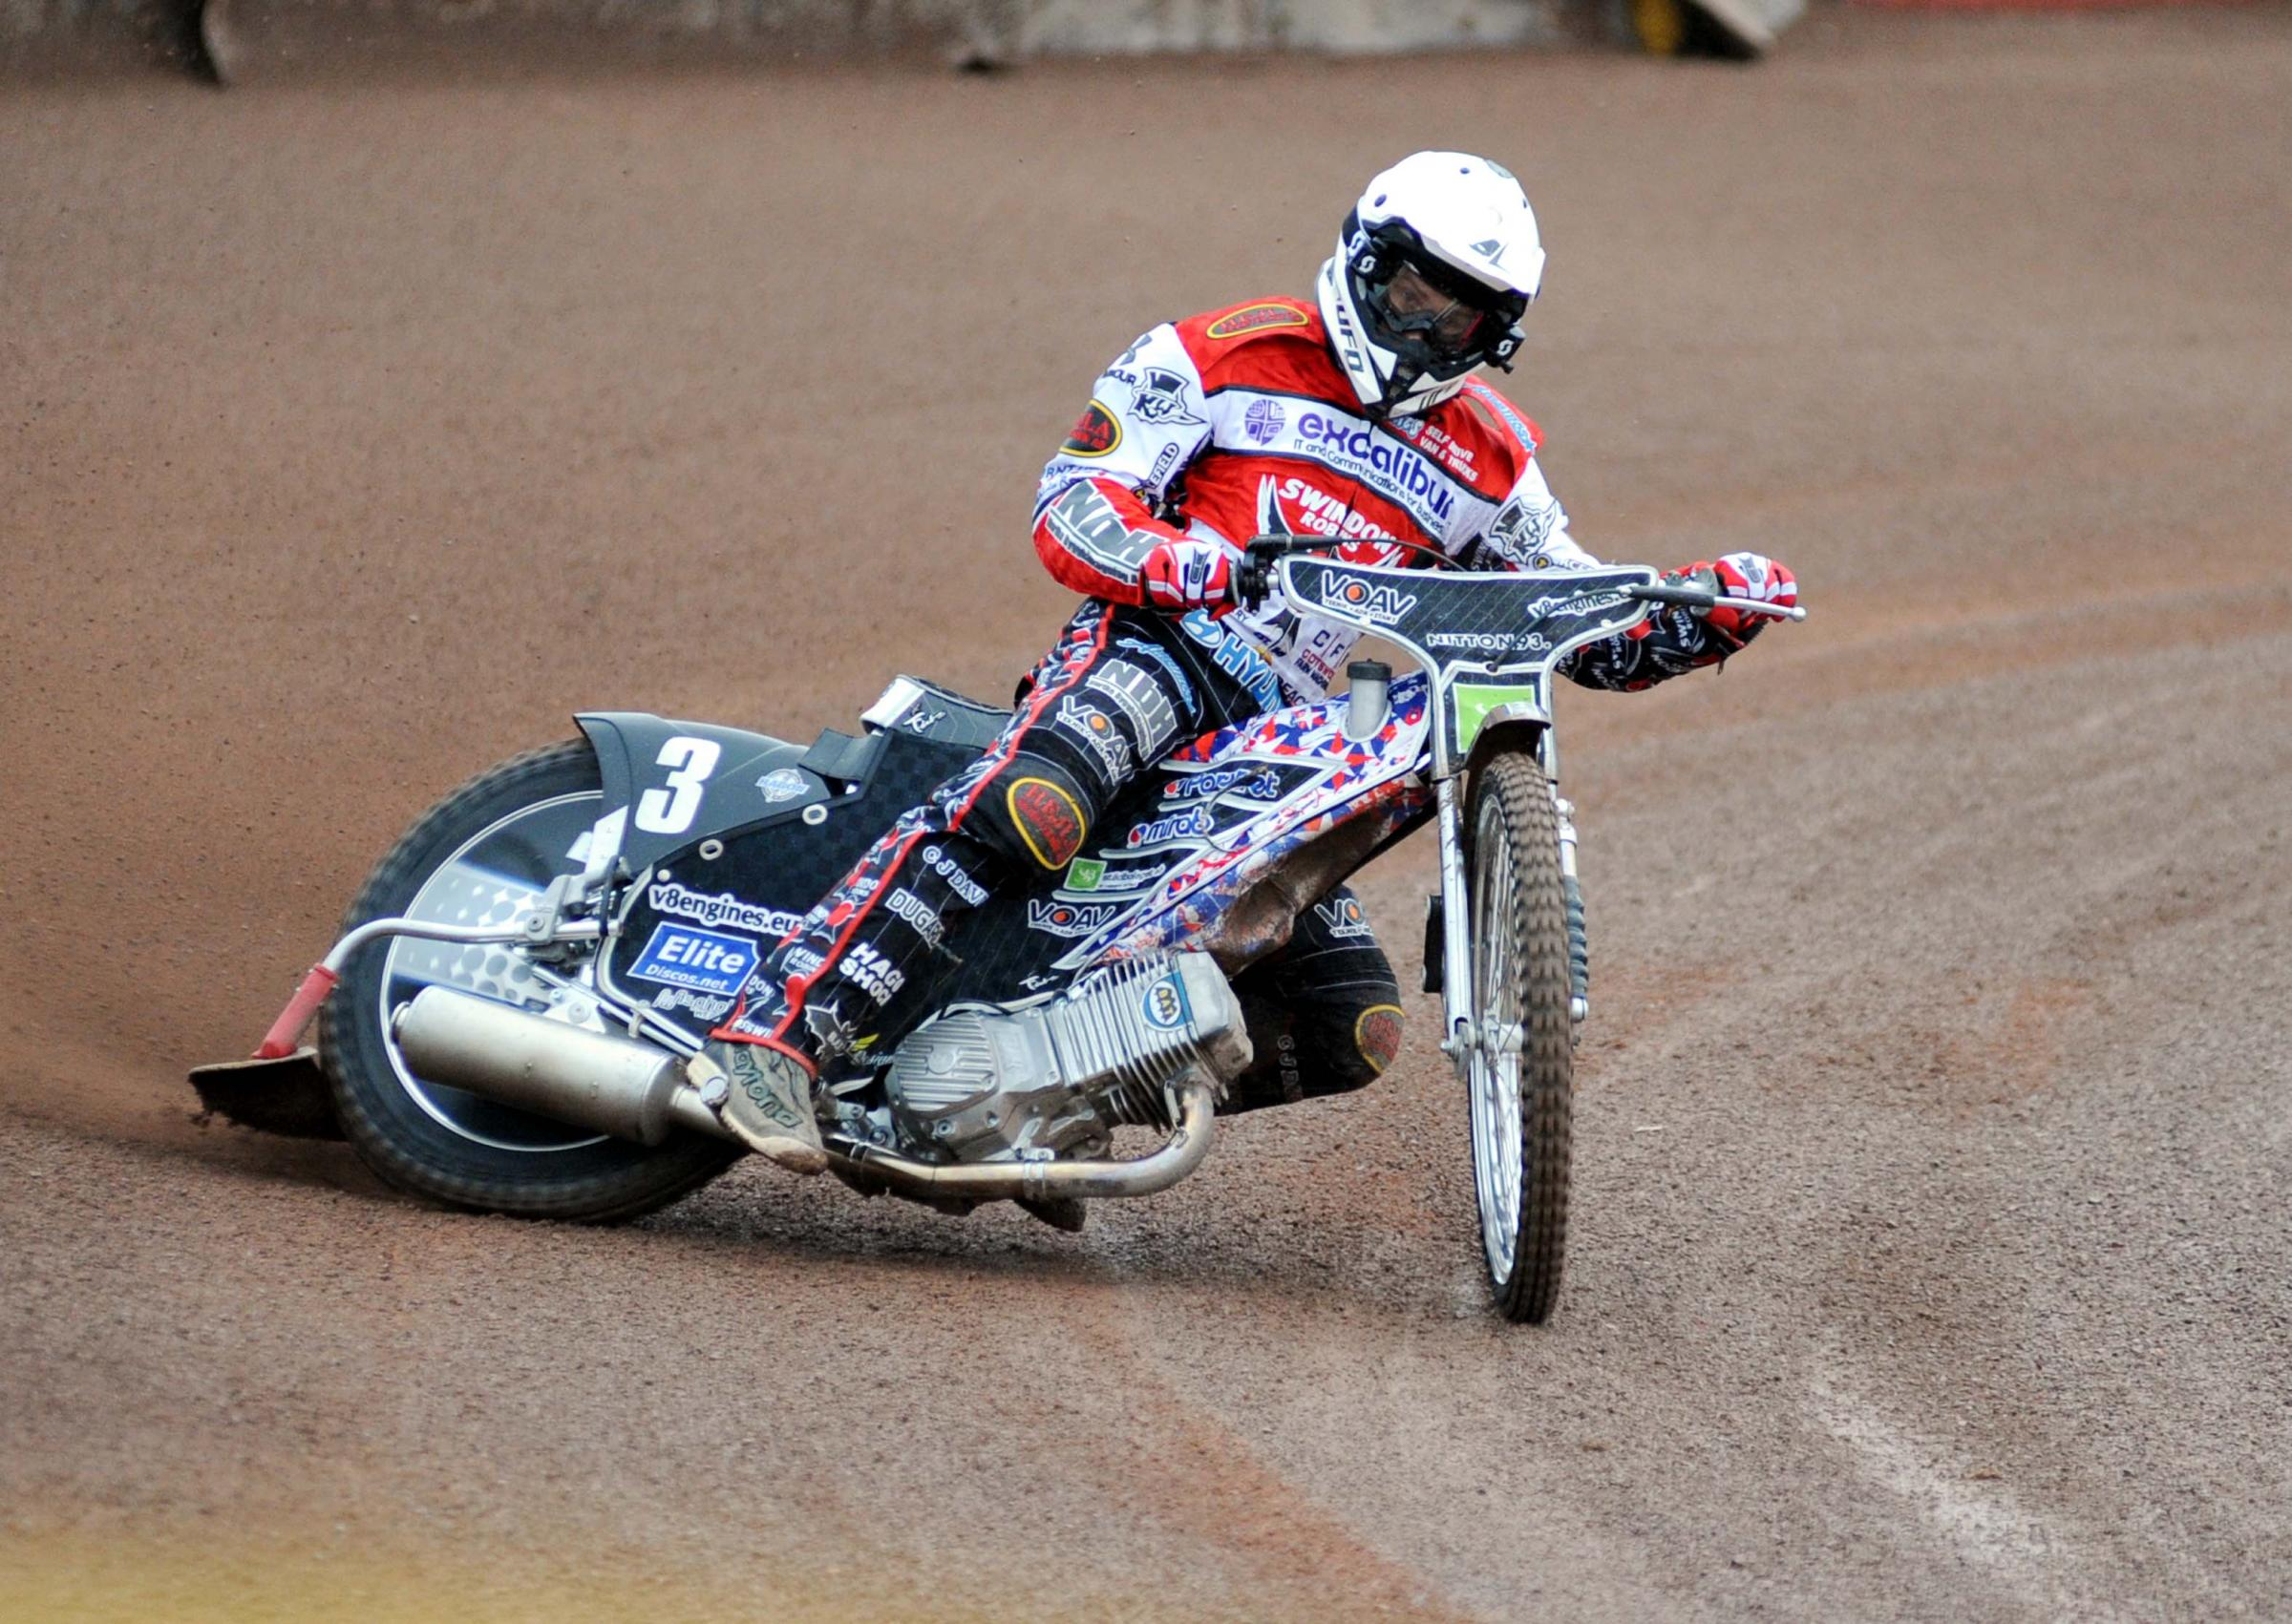 Simon Gustafsson enjoyed a good return to Arlington on Saturday with 15 points